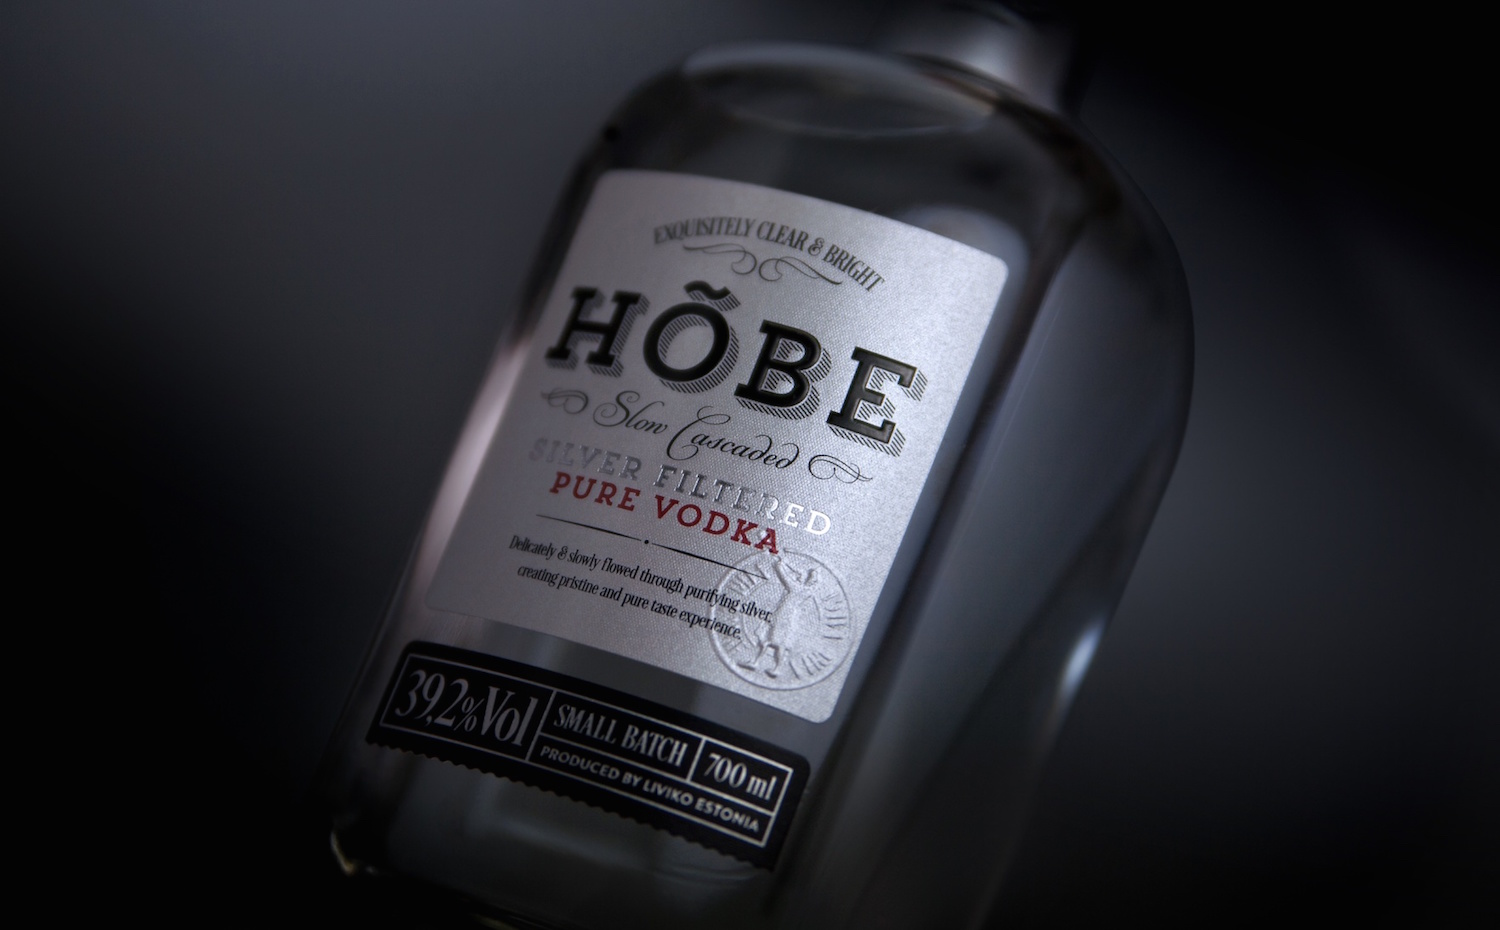 Liviko_Hobe_vodka